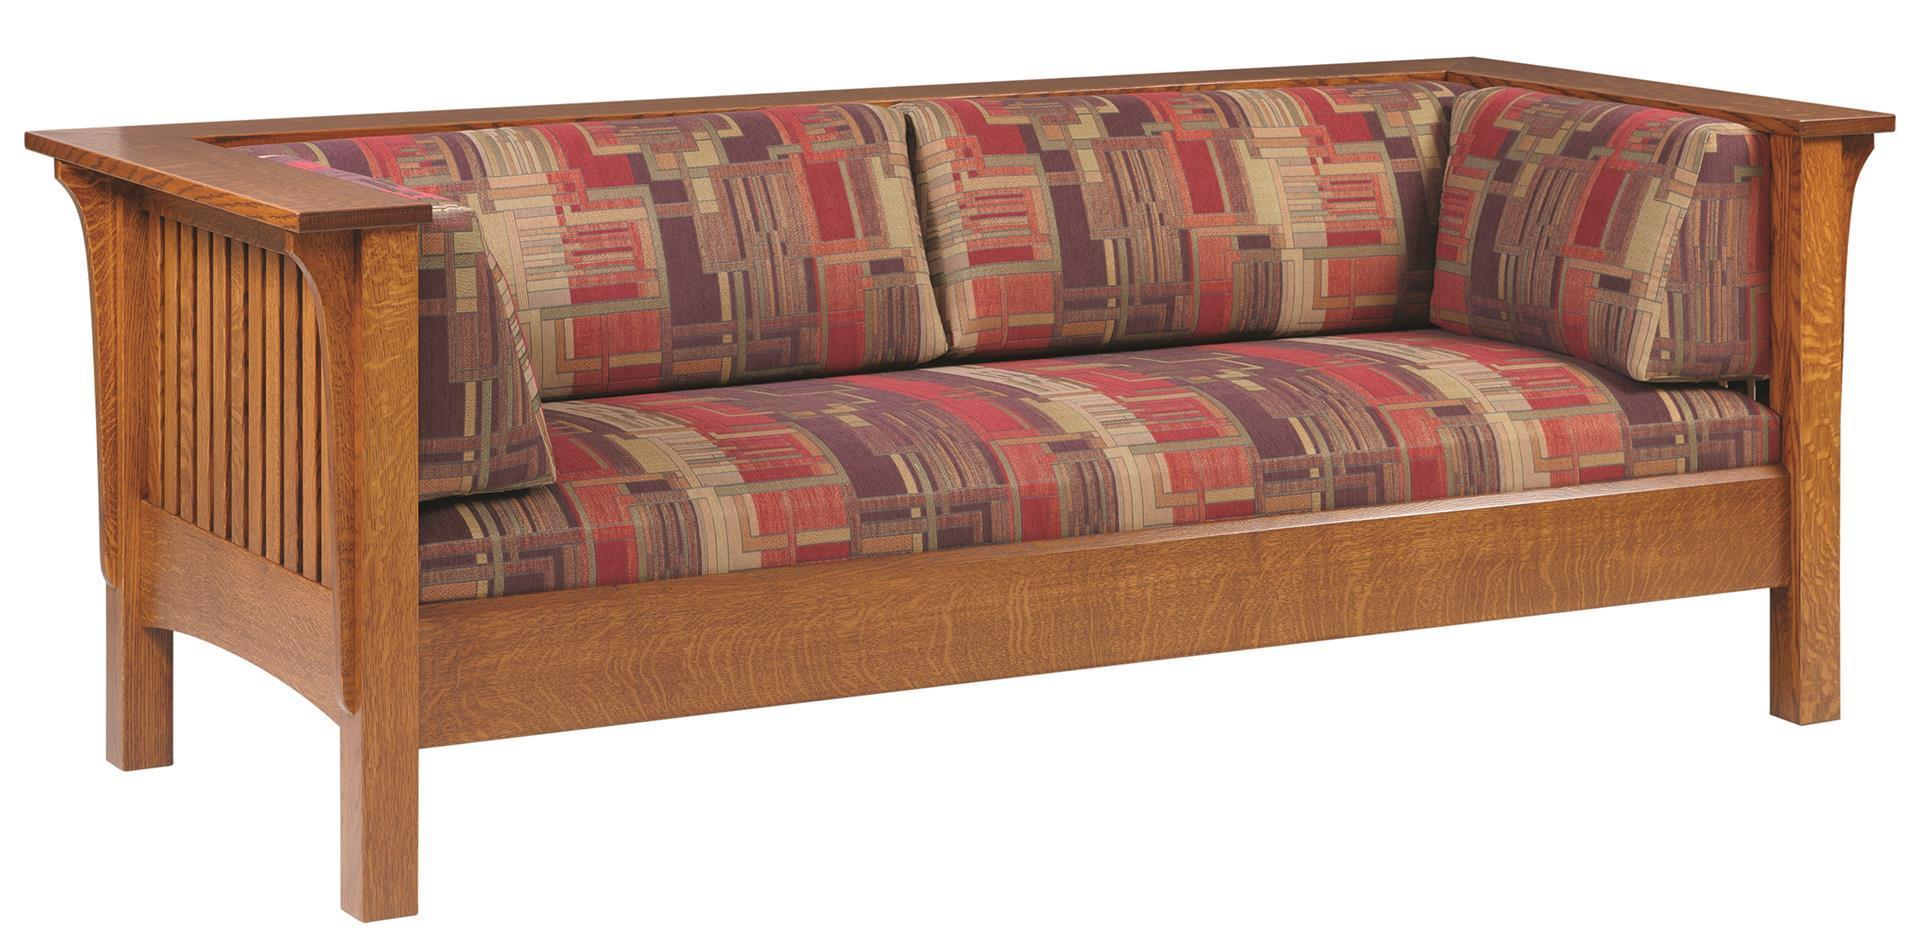 Mission Prairie Sofa From Dutchcrafters Amish Furniture